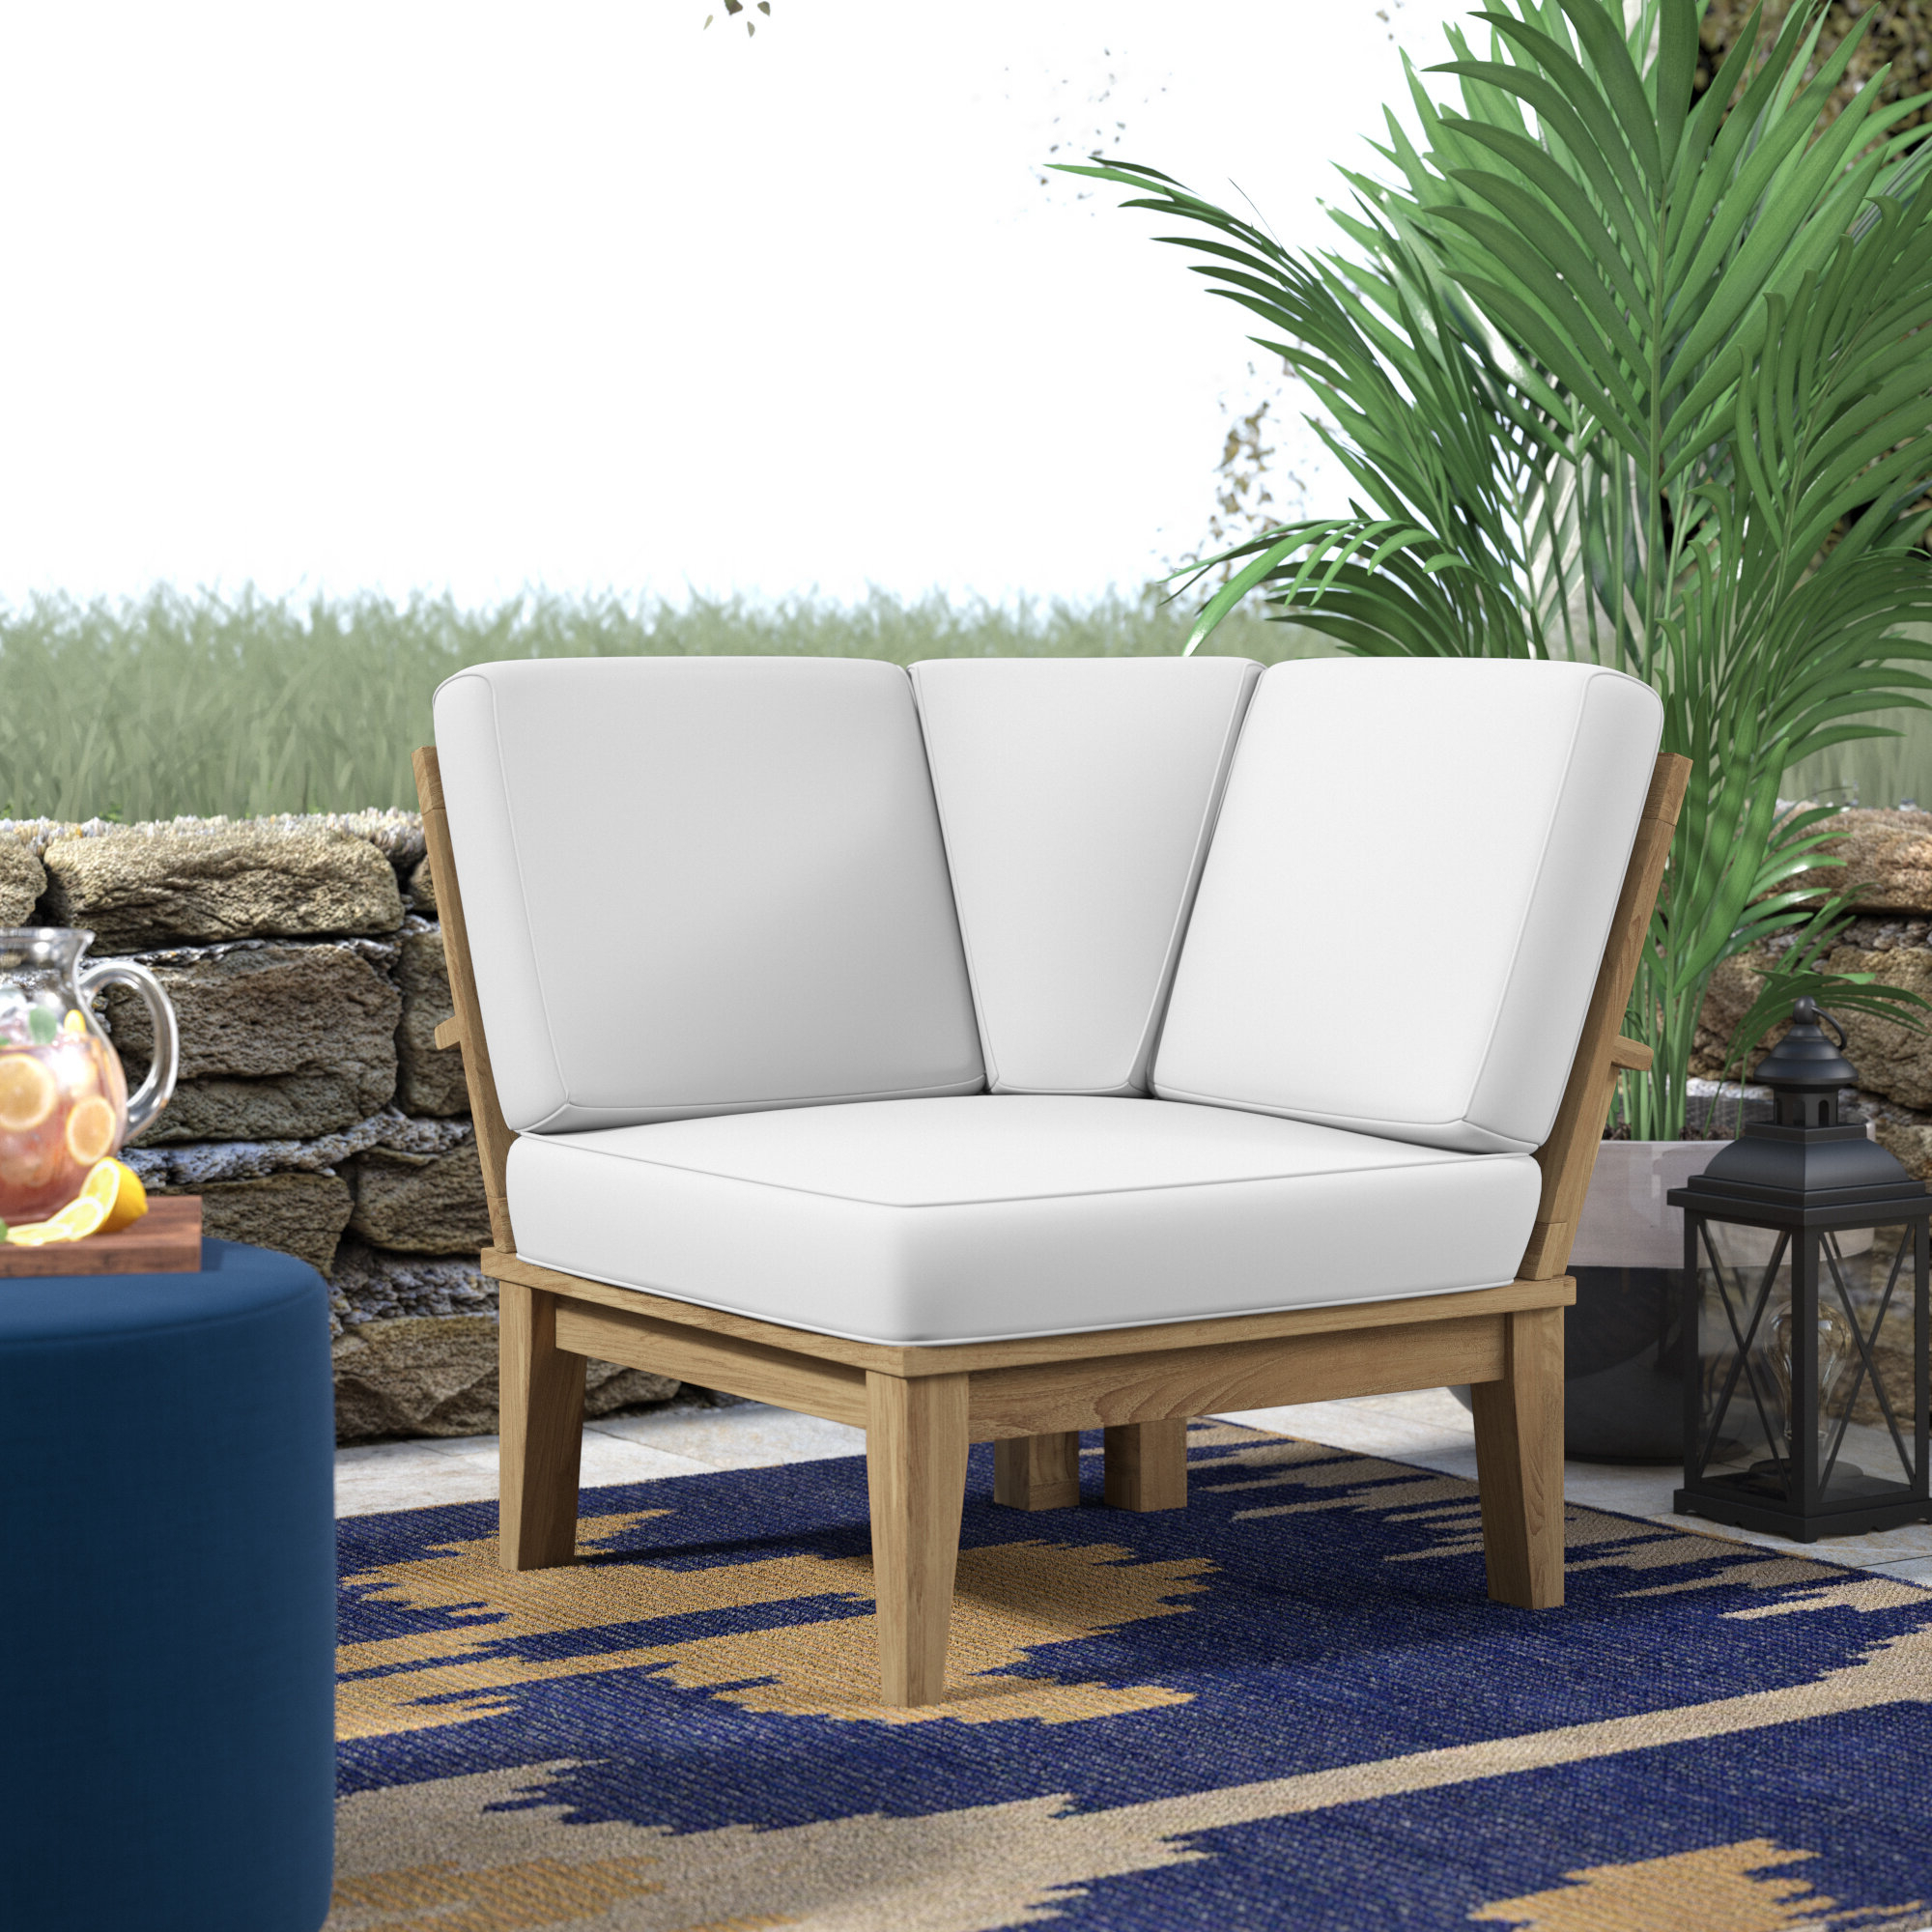 Elaina Teak Patio Chair With Cushions With Regard To Preferred Brunswick Teak Patio Sofas With Cushions (View 21 of 25)